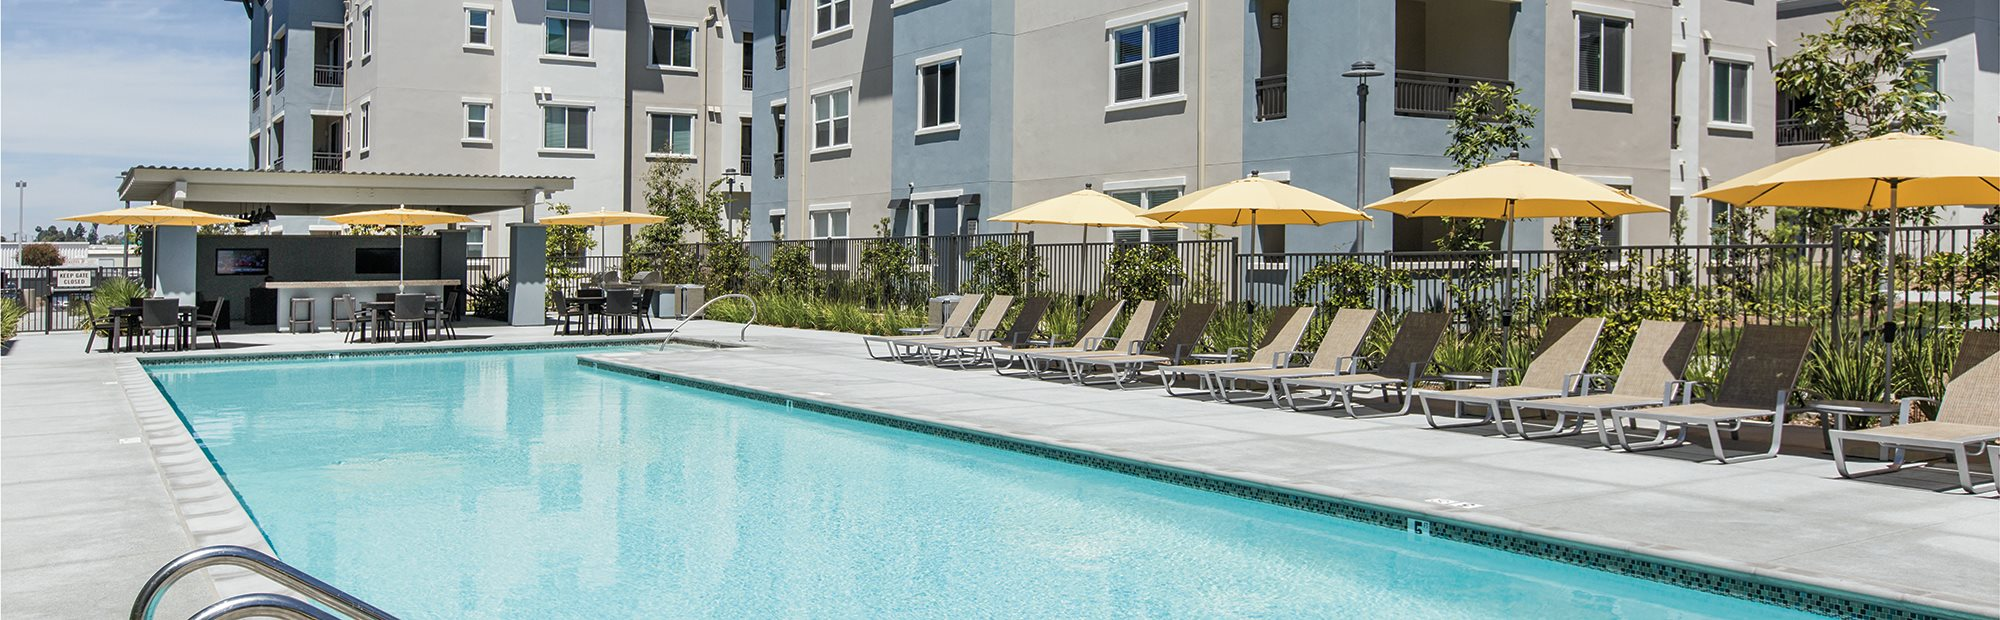 palomar station apartments in san marcos ca